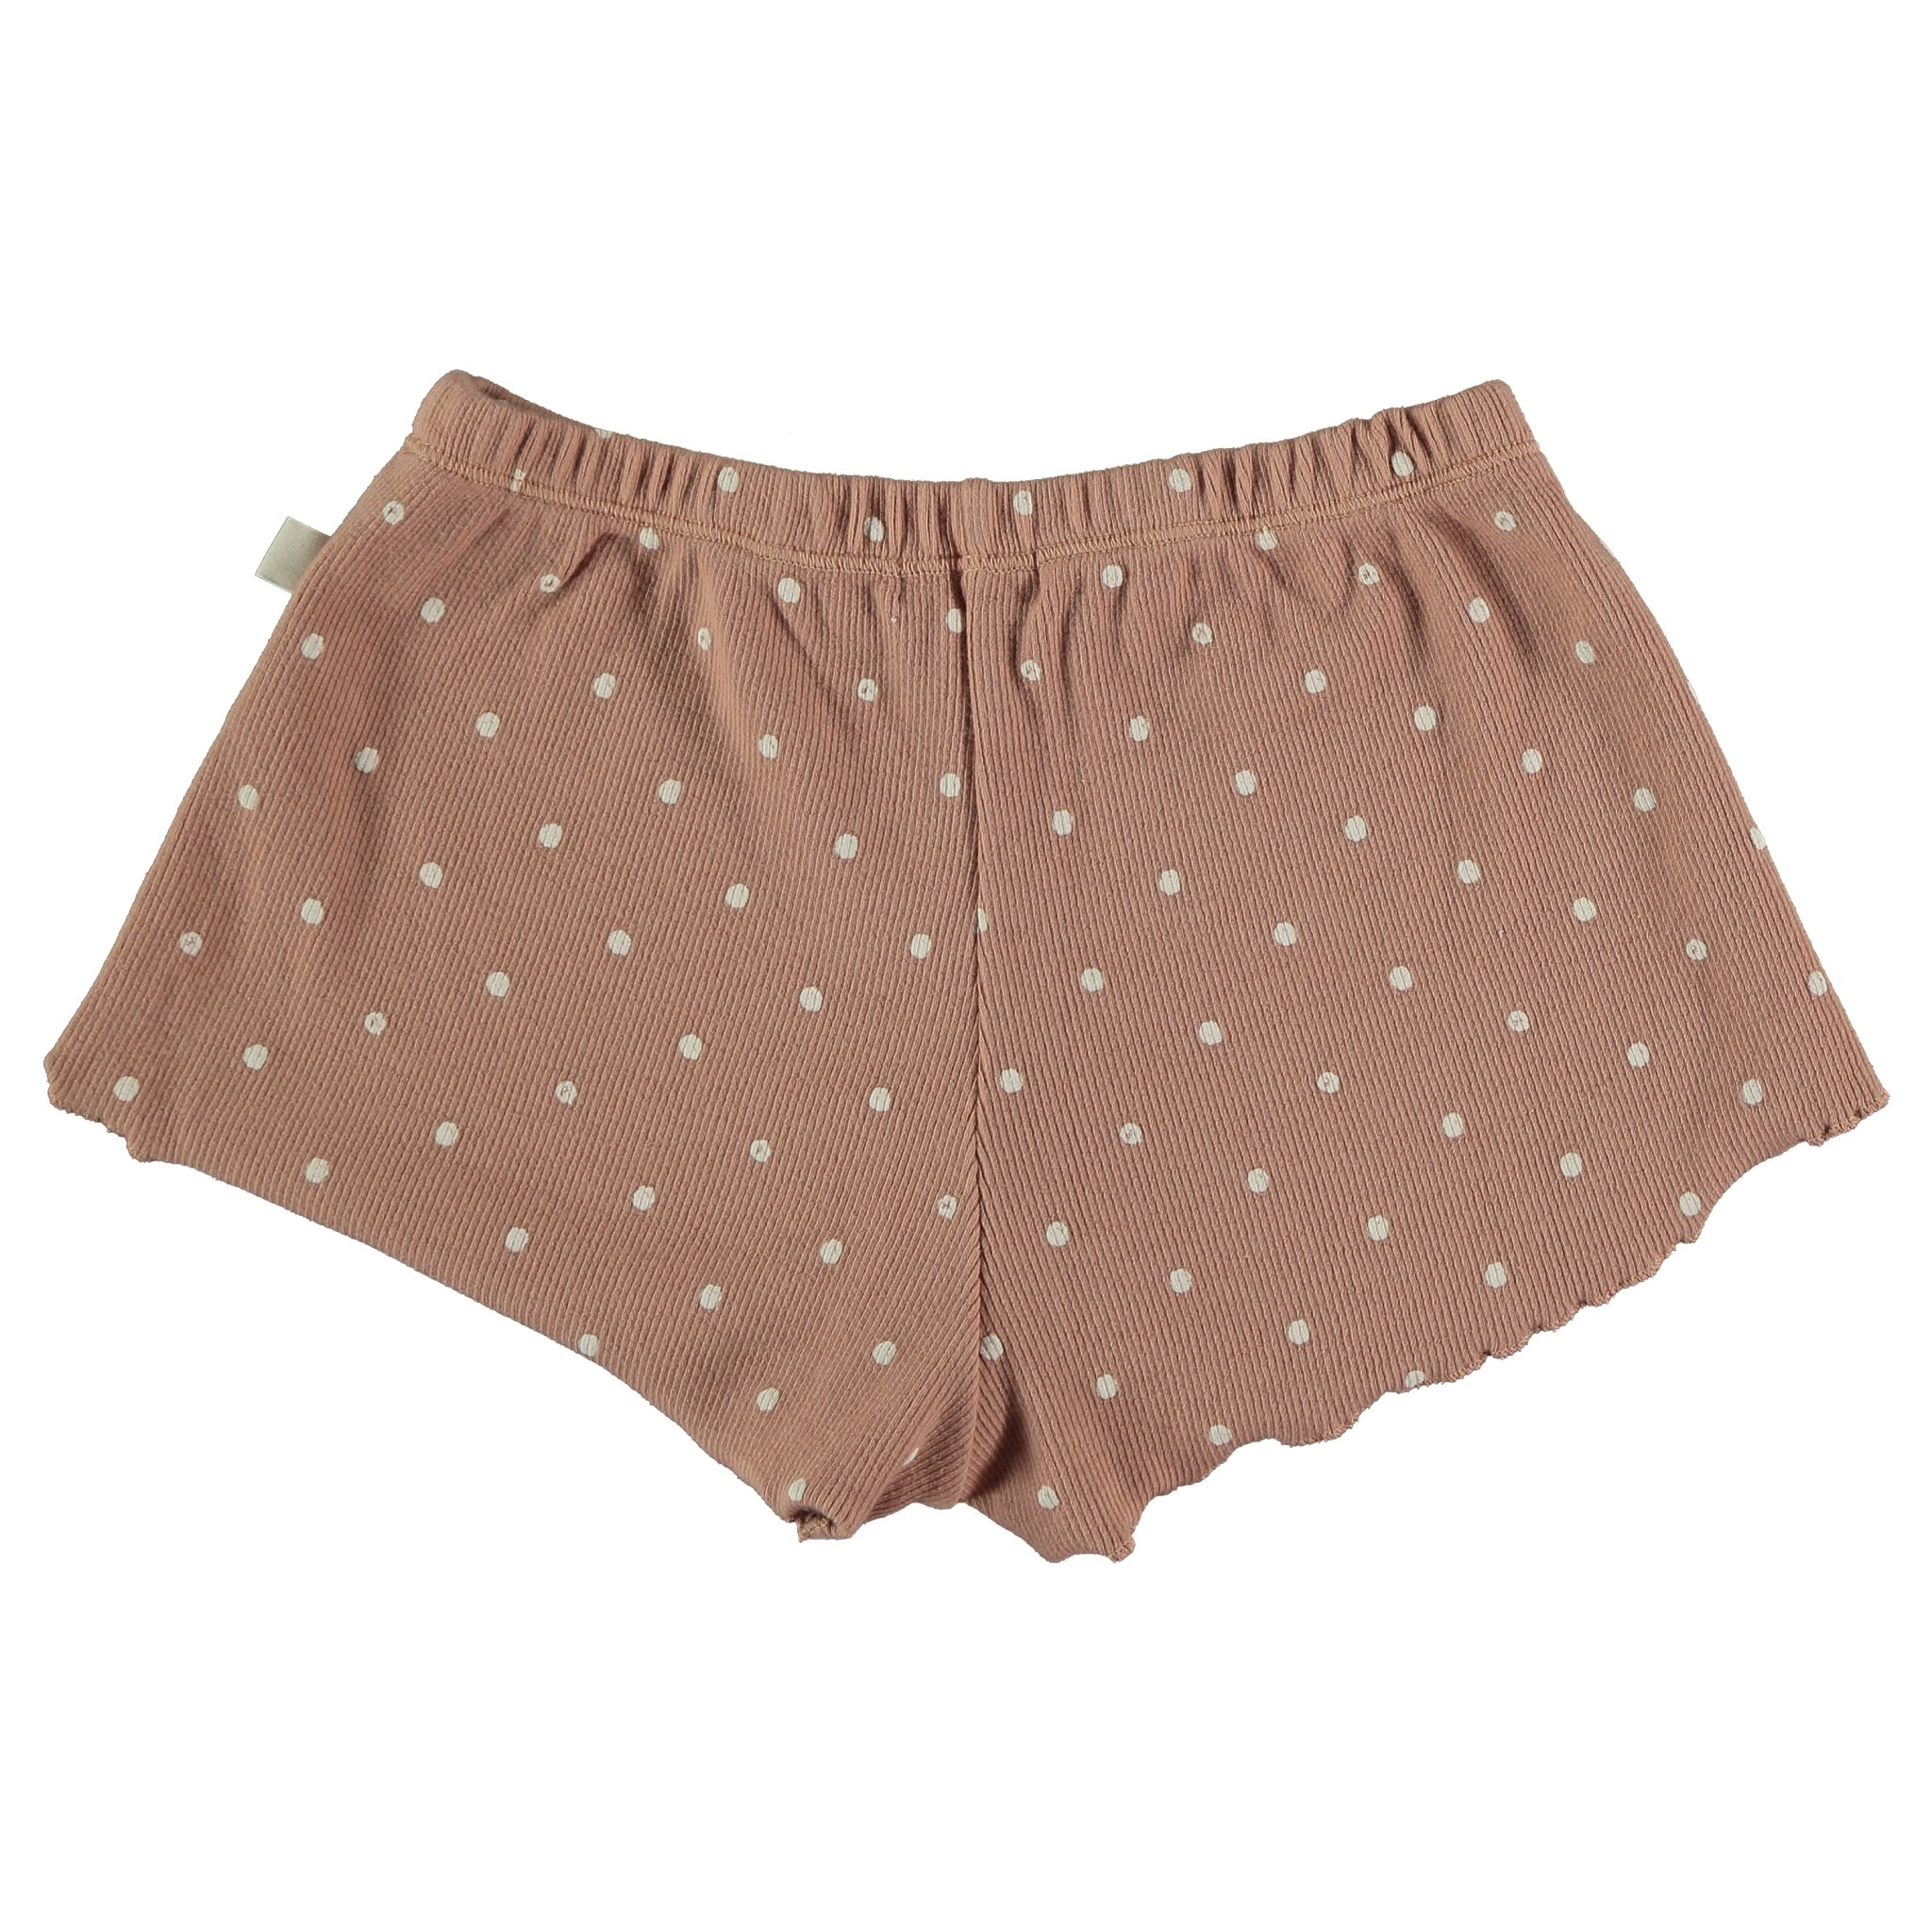 My Little Cozmo Organic cotton dotted shorts | Terra cotta